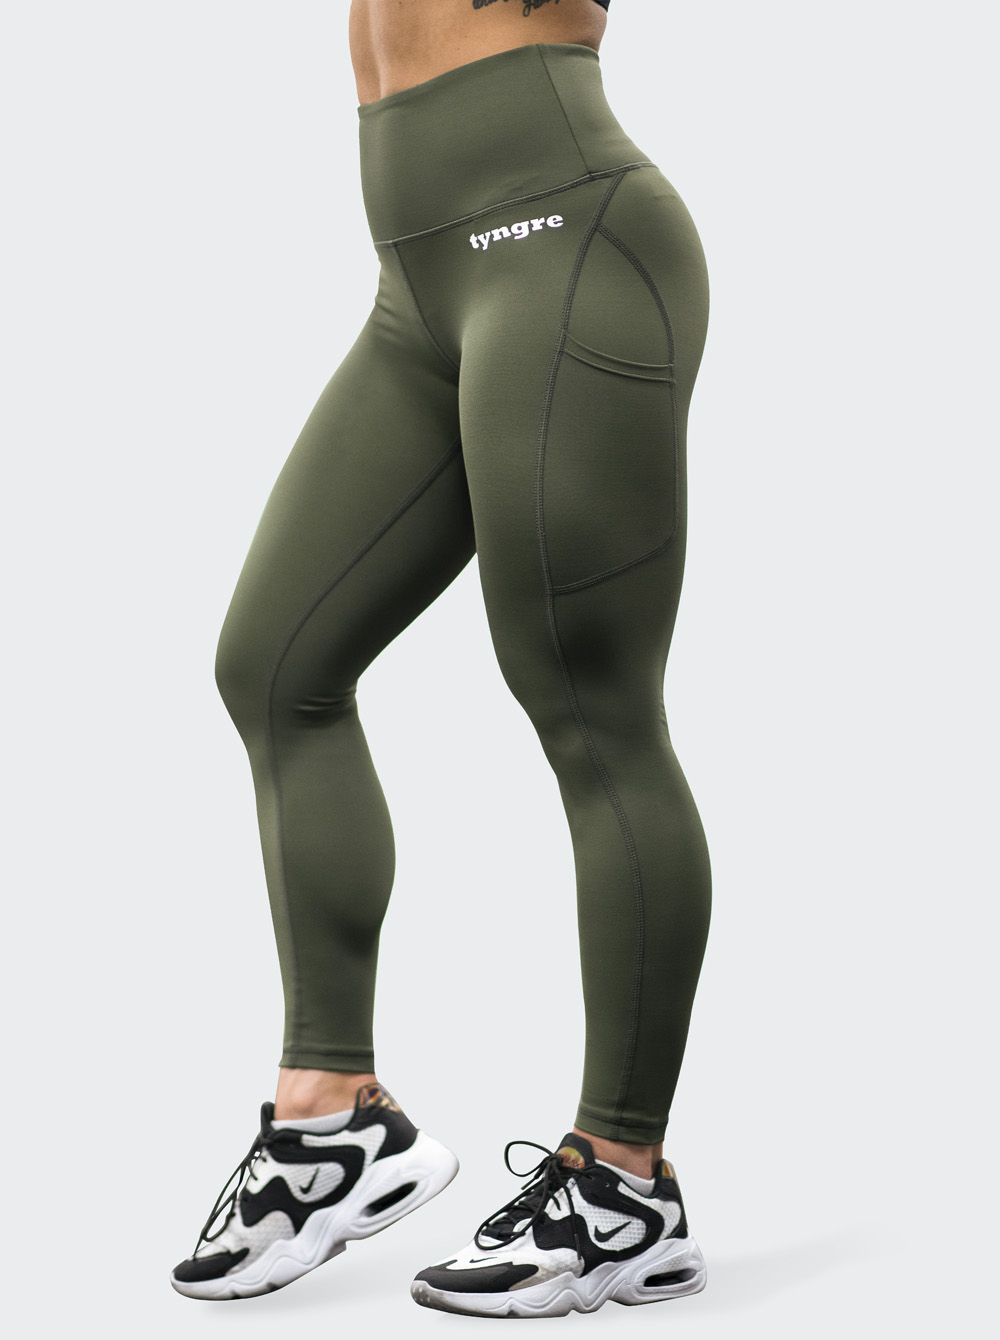 Tights Legend Army Green 7/8